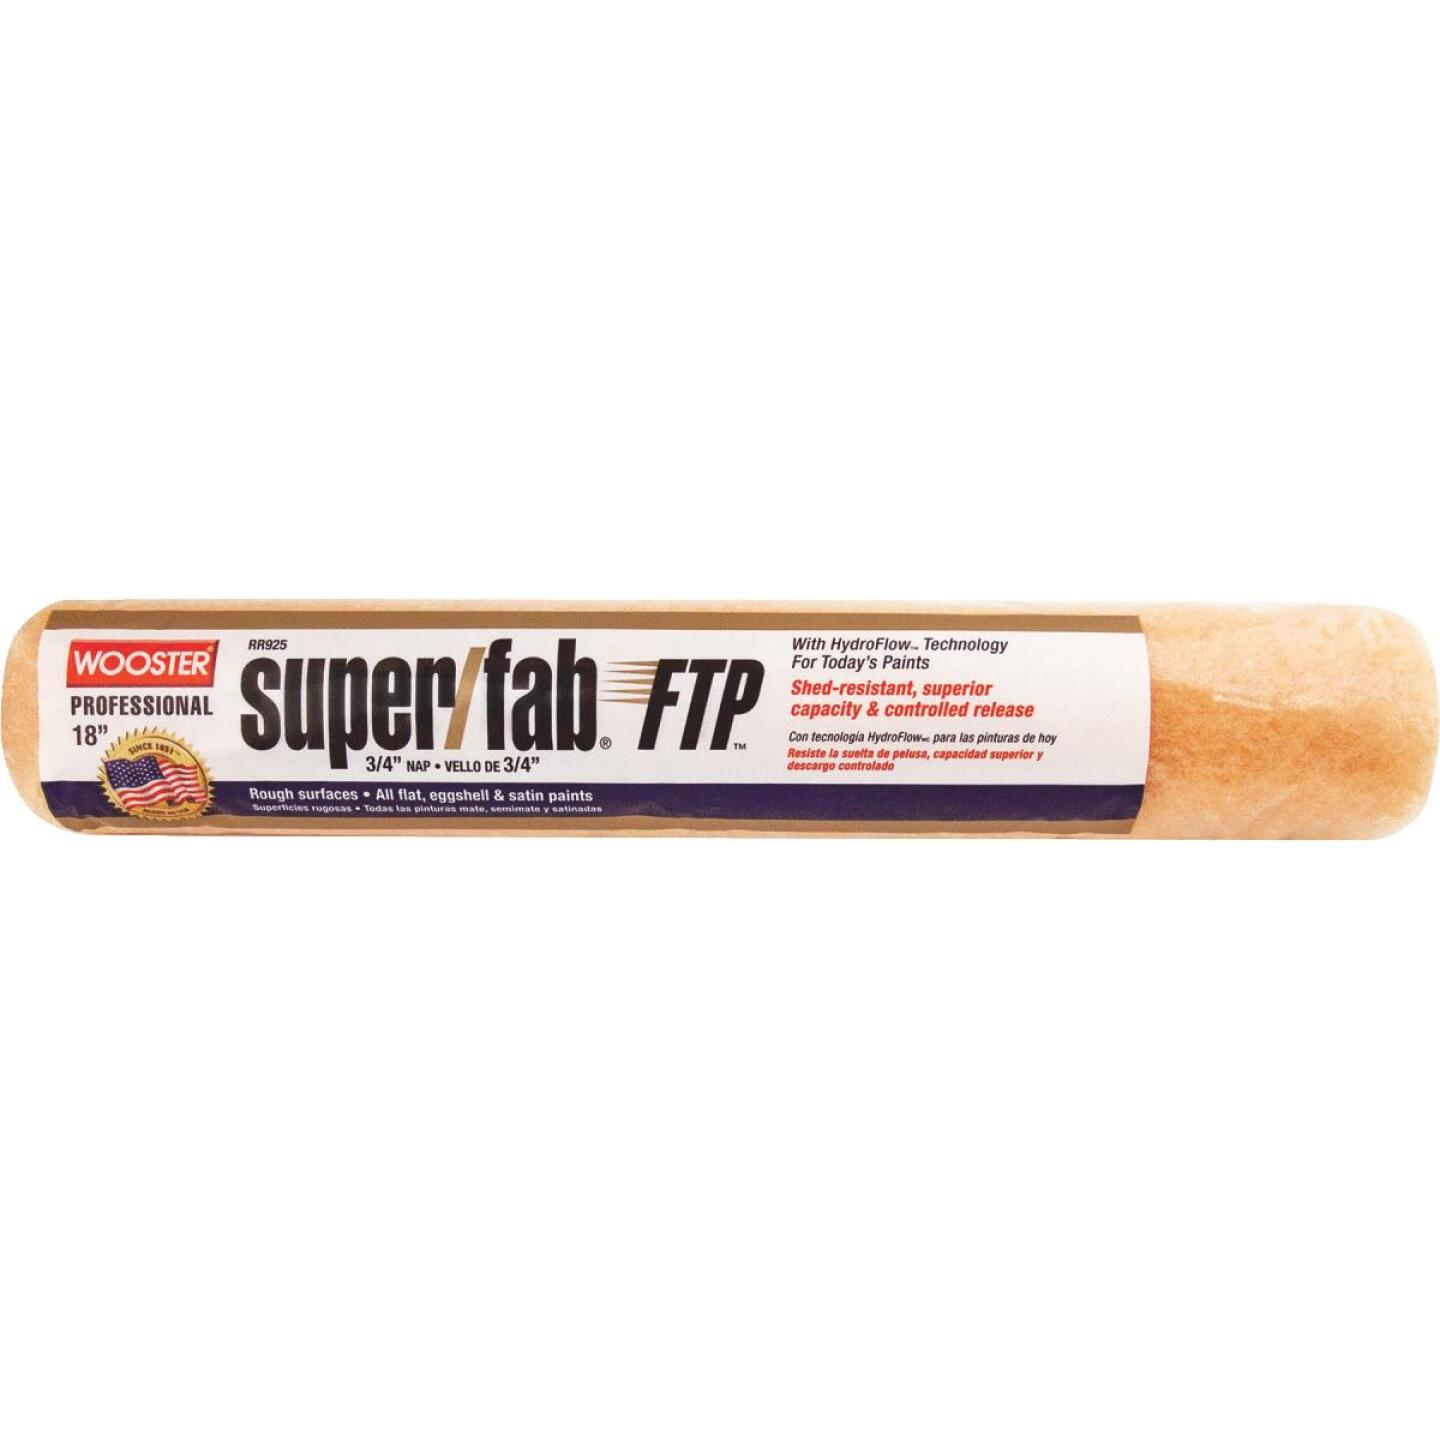 Wooster Super/Fab FTP 18 In. x 3/4 In. Knit Fabric Roller Cover Image 1